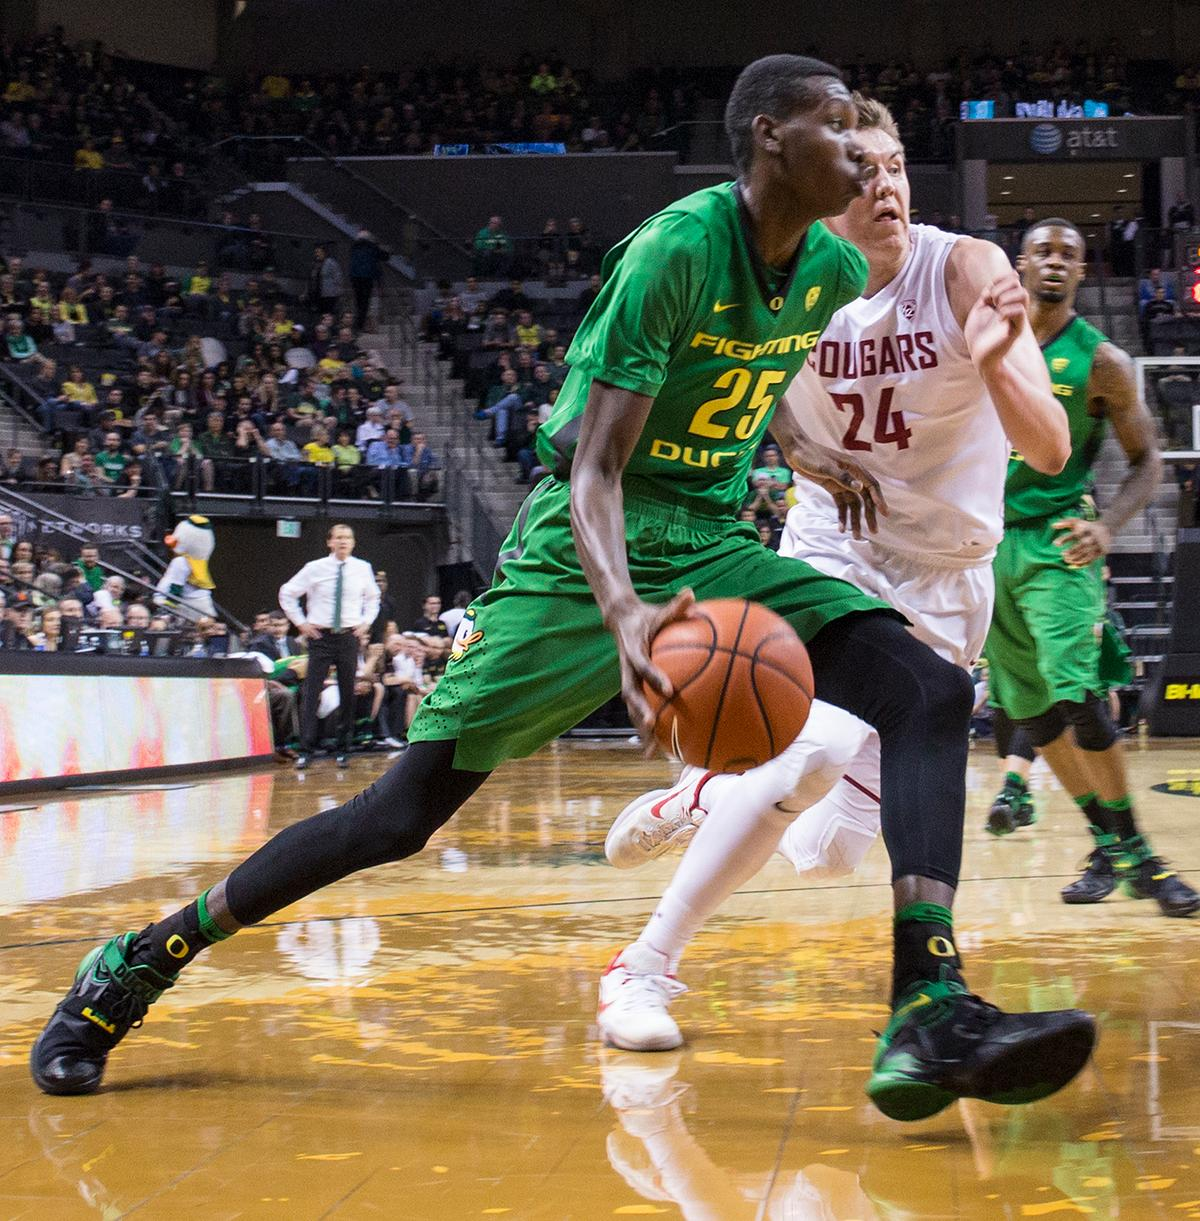 Oregon Ducks' Chris Boucher (#25) drives toward the basket against Washington State Cougars' Josh Hawkinson (#24). The Ducks beat the Cougars 76-62. Kianna Cabuco, Oregon News Lab